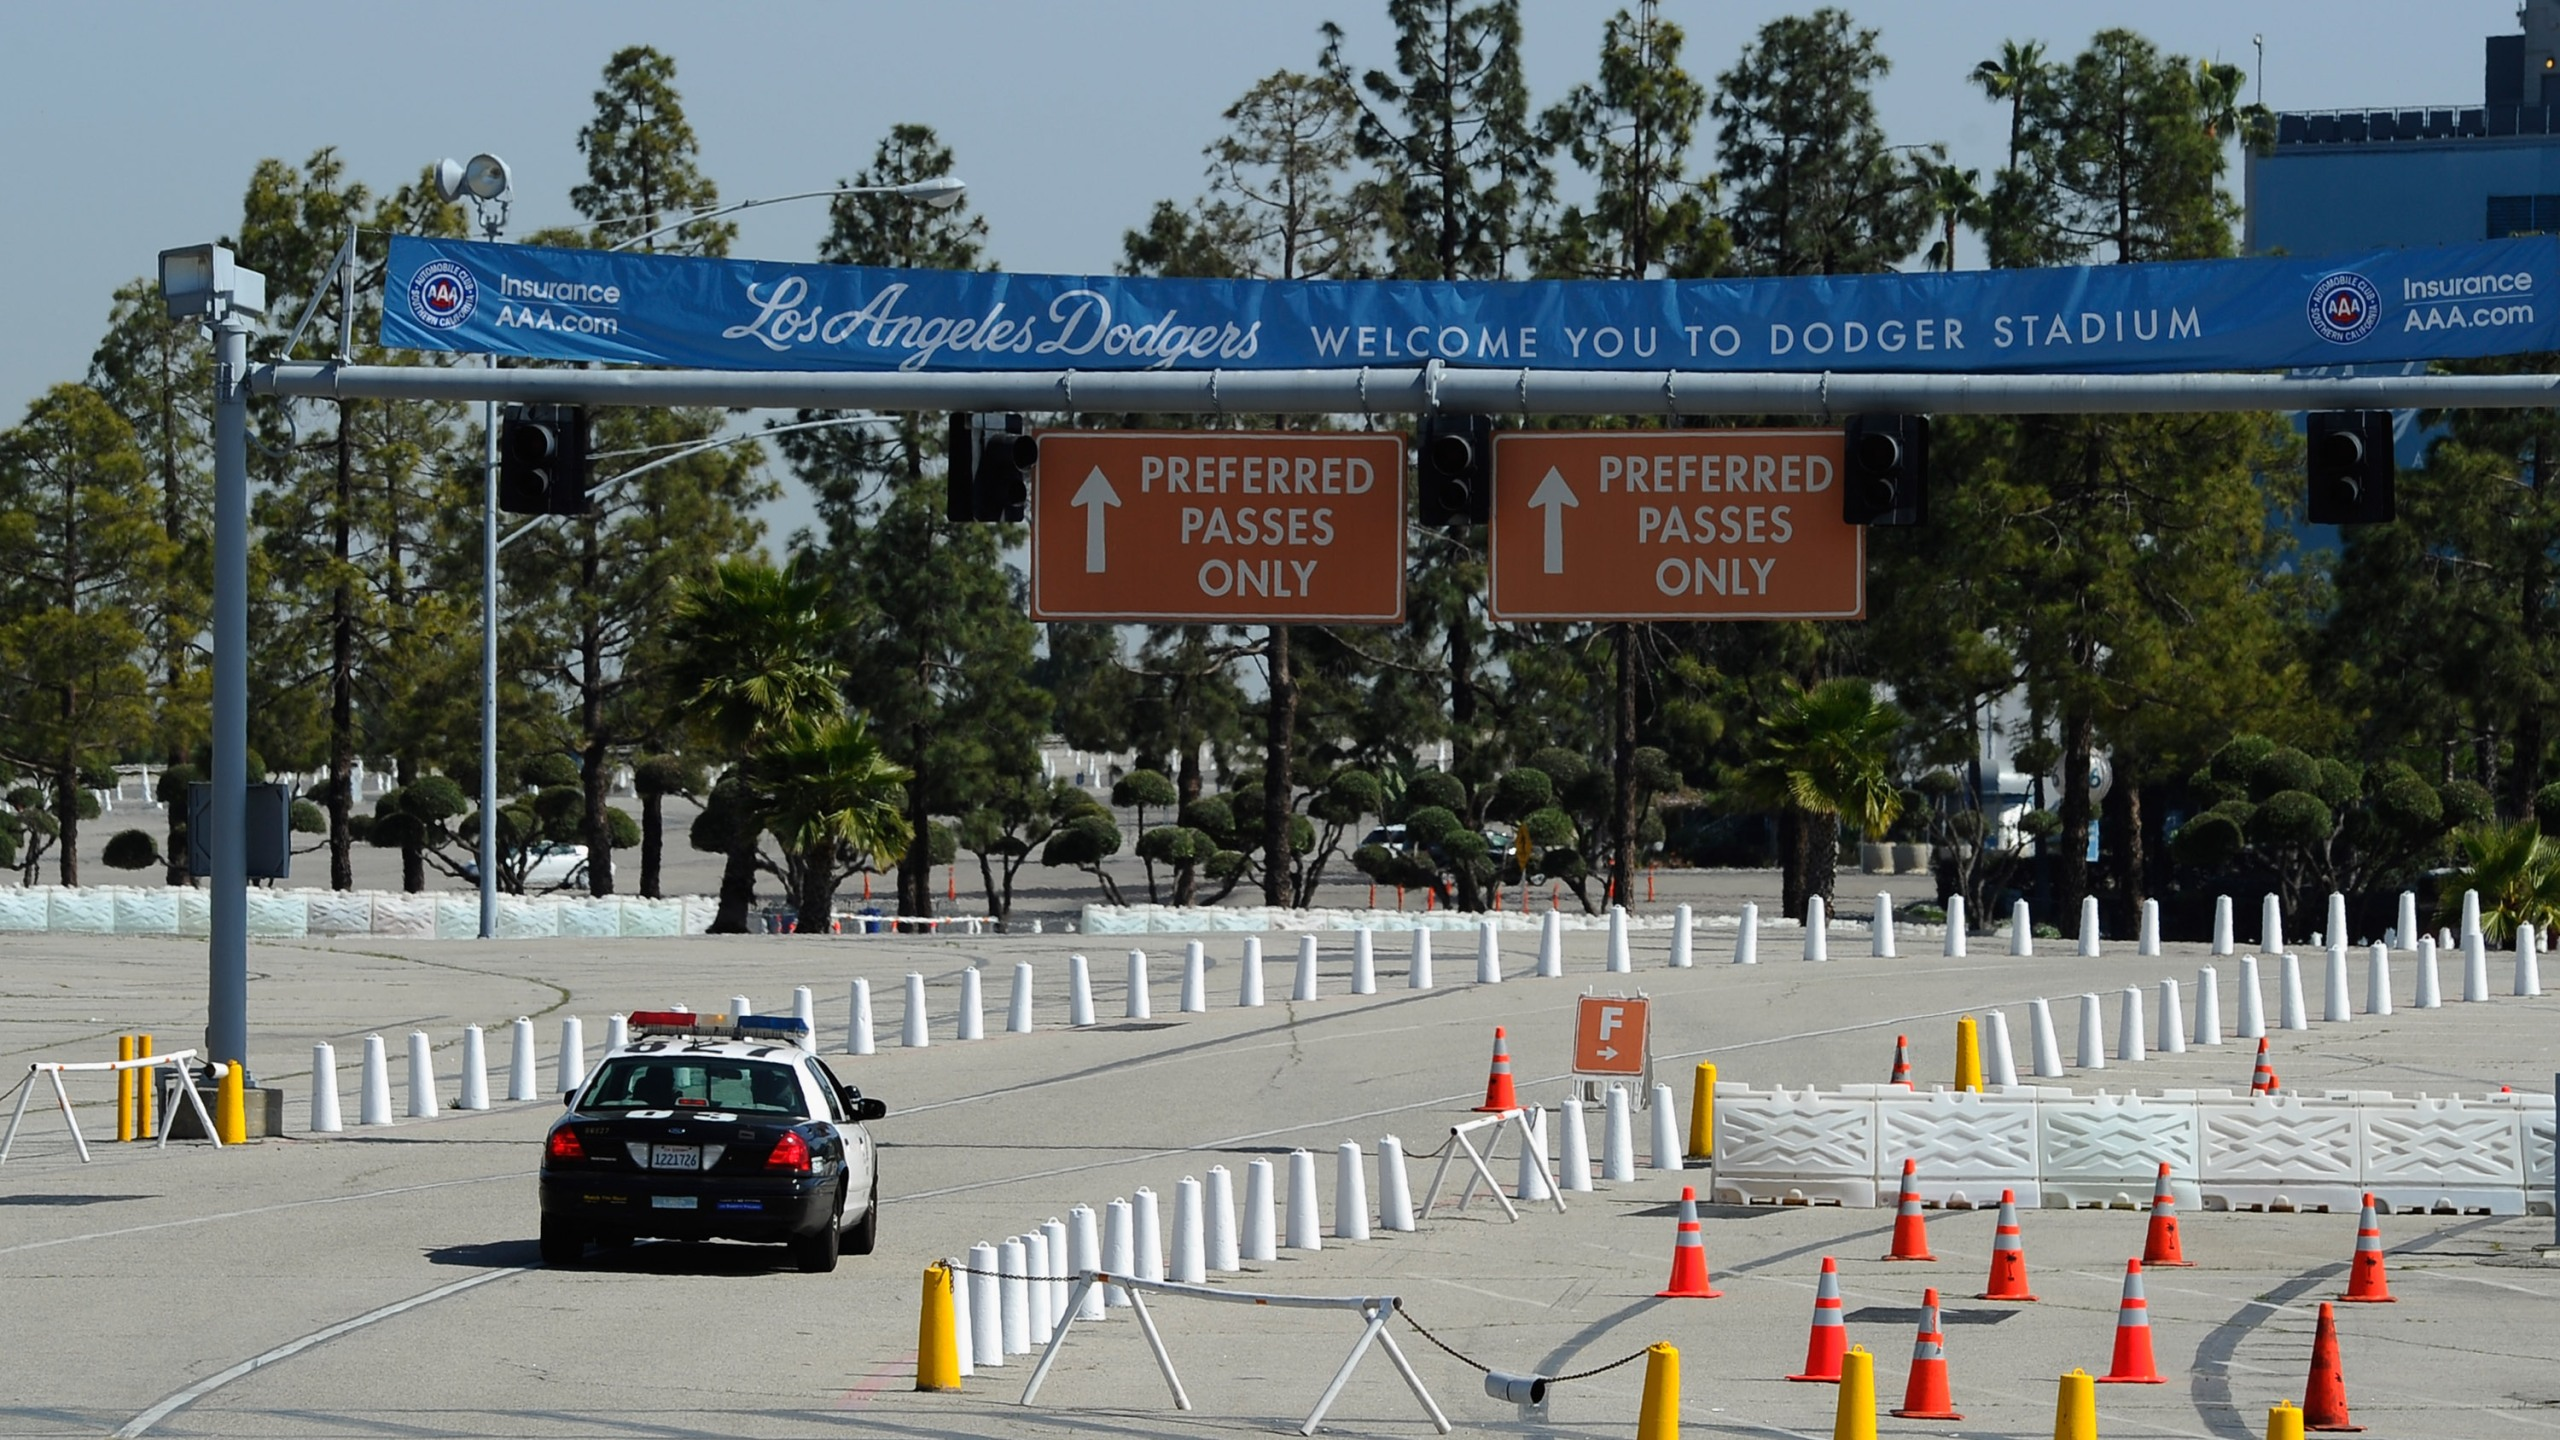 The parking lot at Dodger stadium is shown in this file photo. (Credit: Kevork Djansezian/Getty Images)